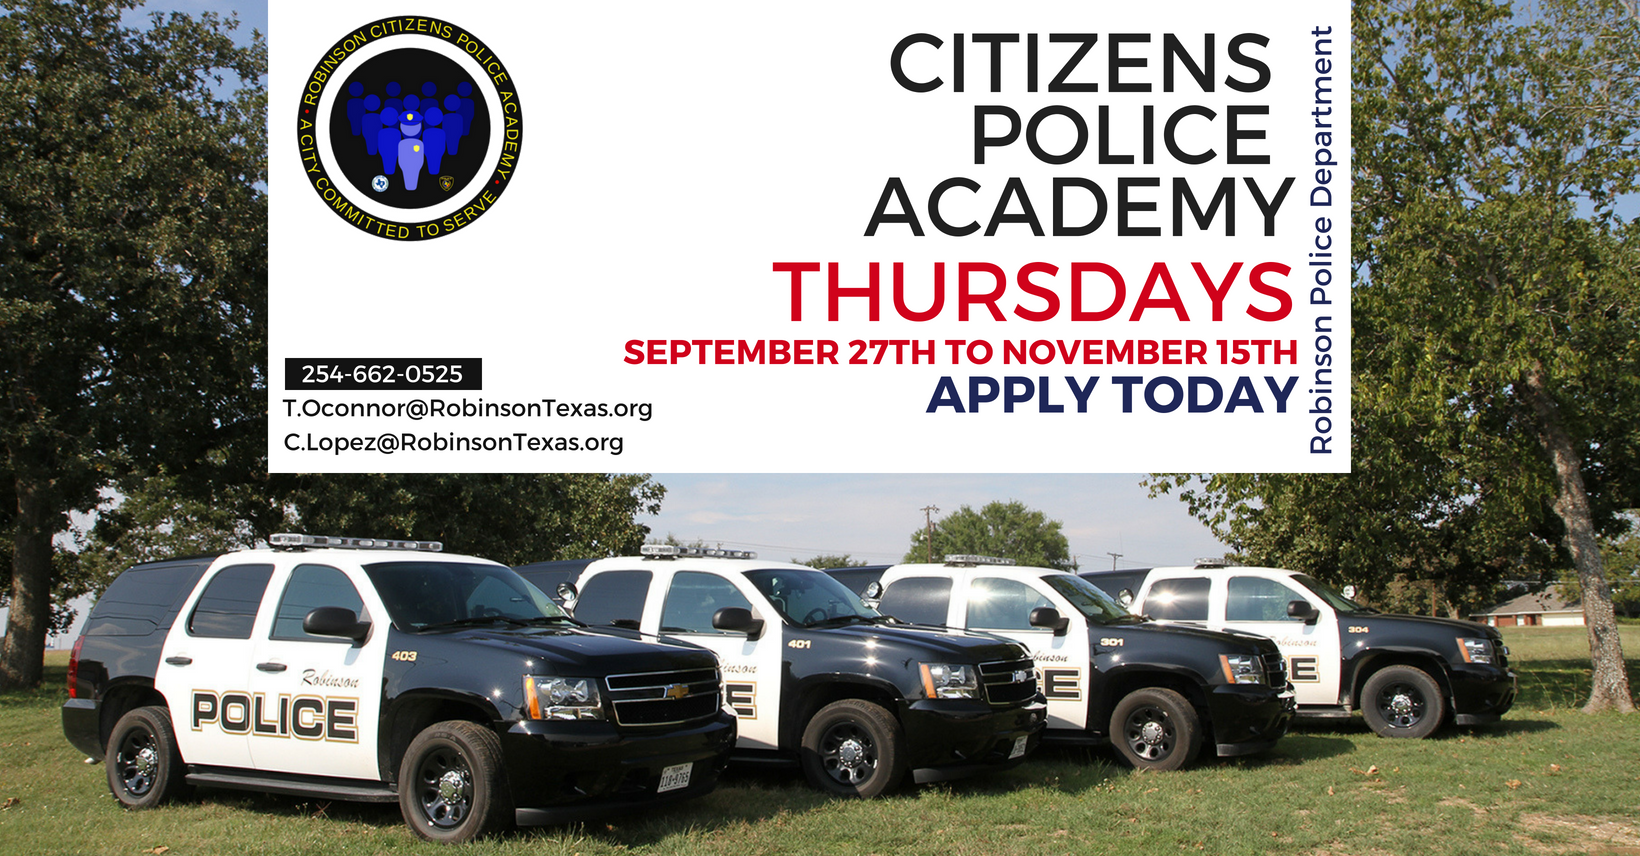 citizens police academy_FBEvent_Fall2018